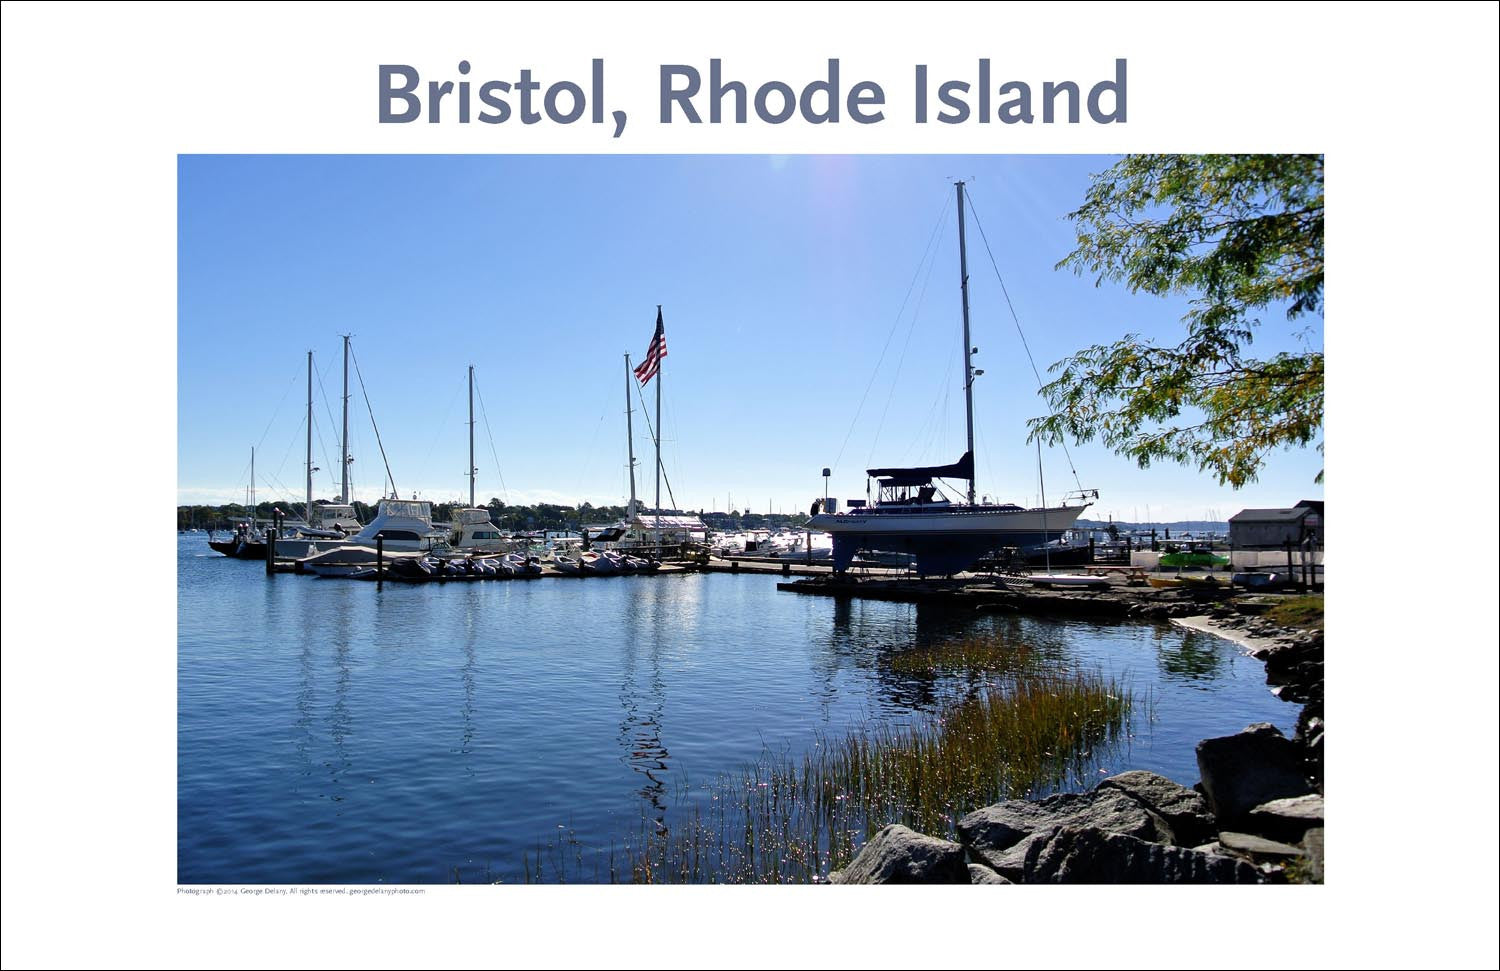 Bristol, Rhode Island, Place Photo Poster Collection #209